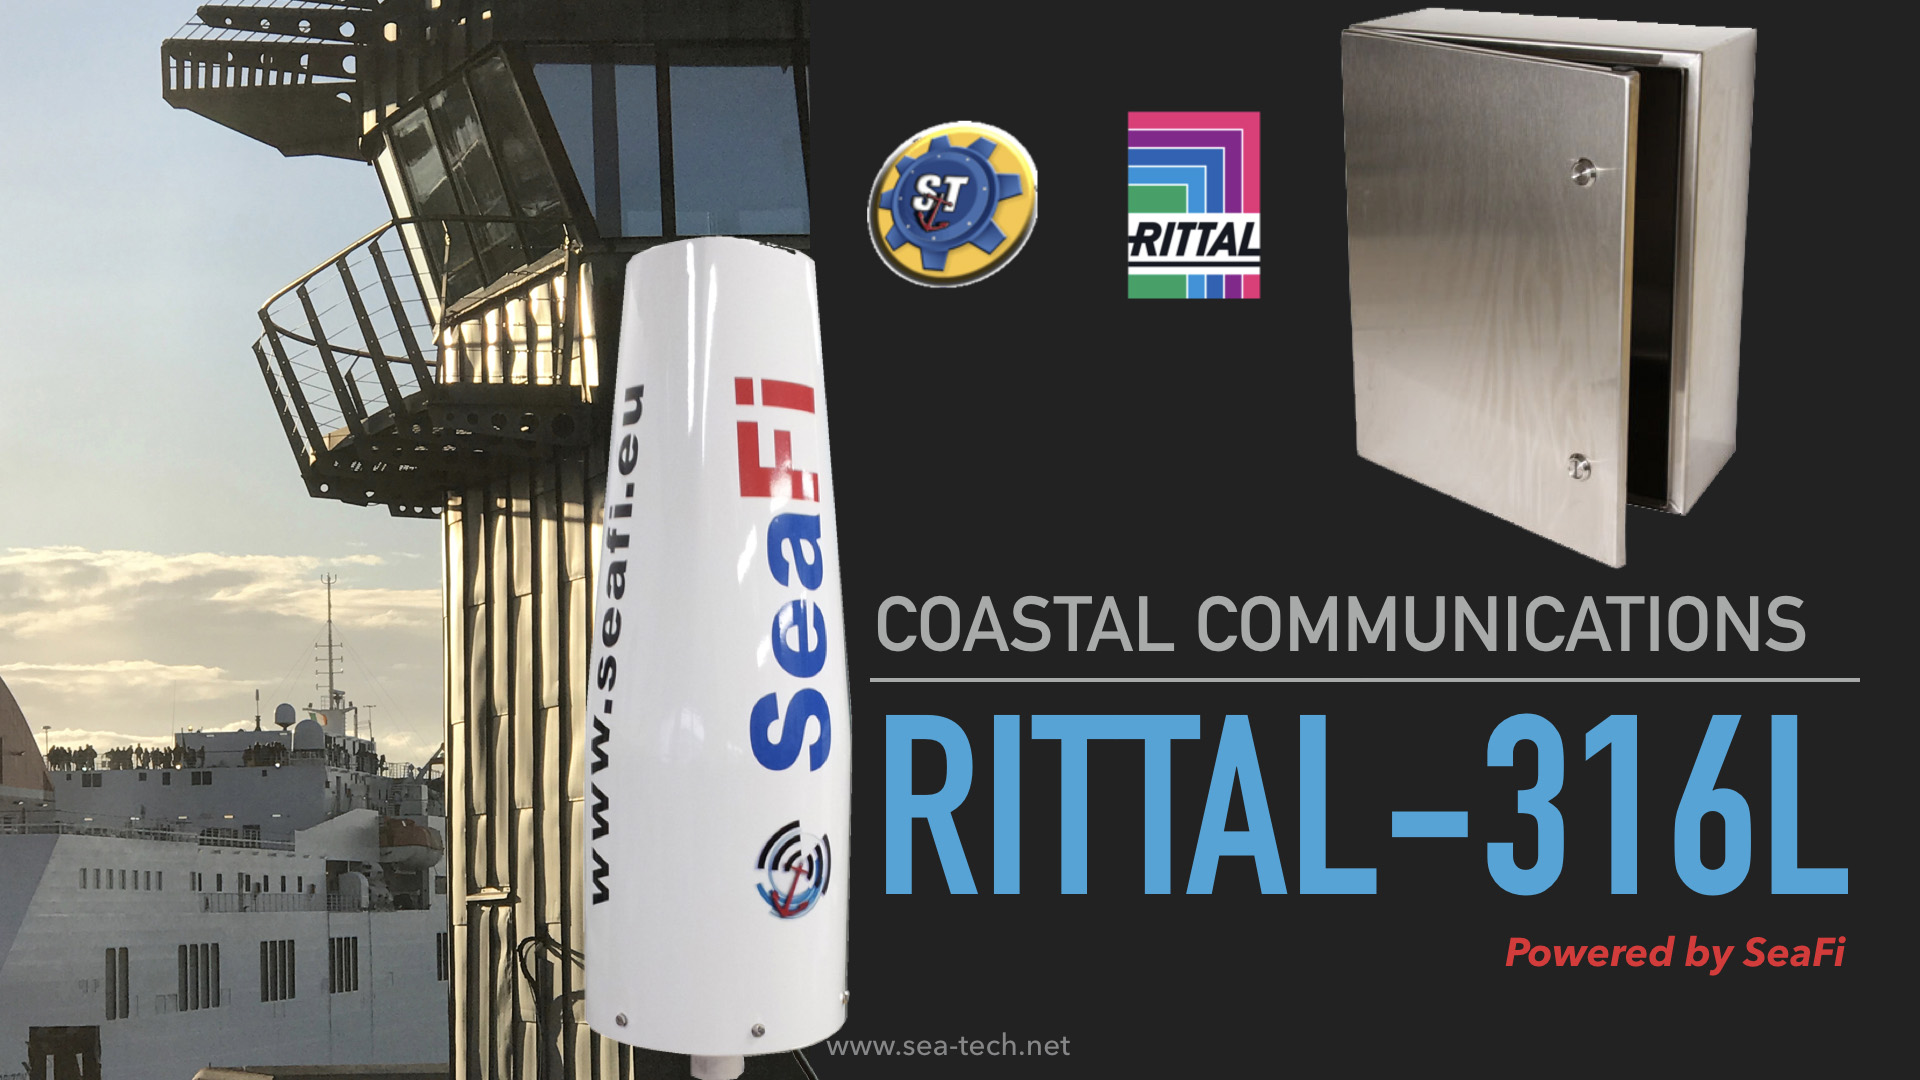 Rittal partnership